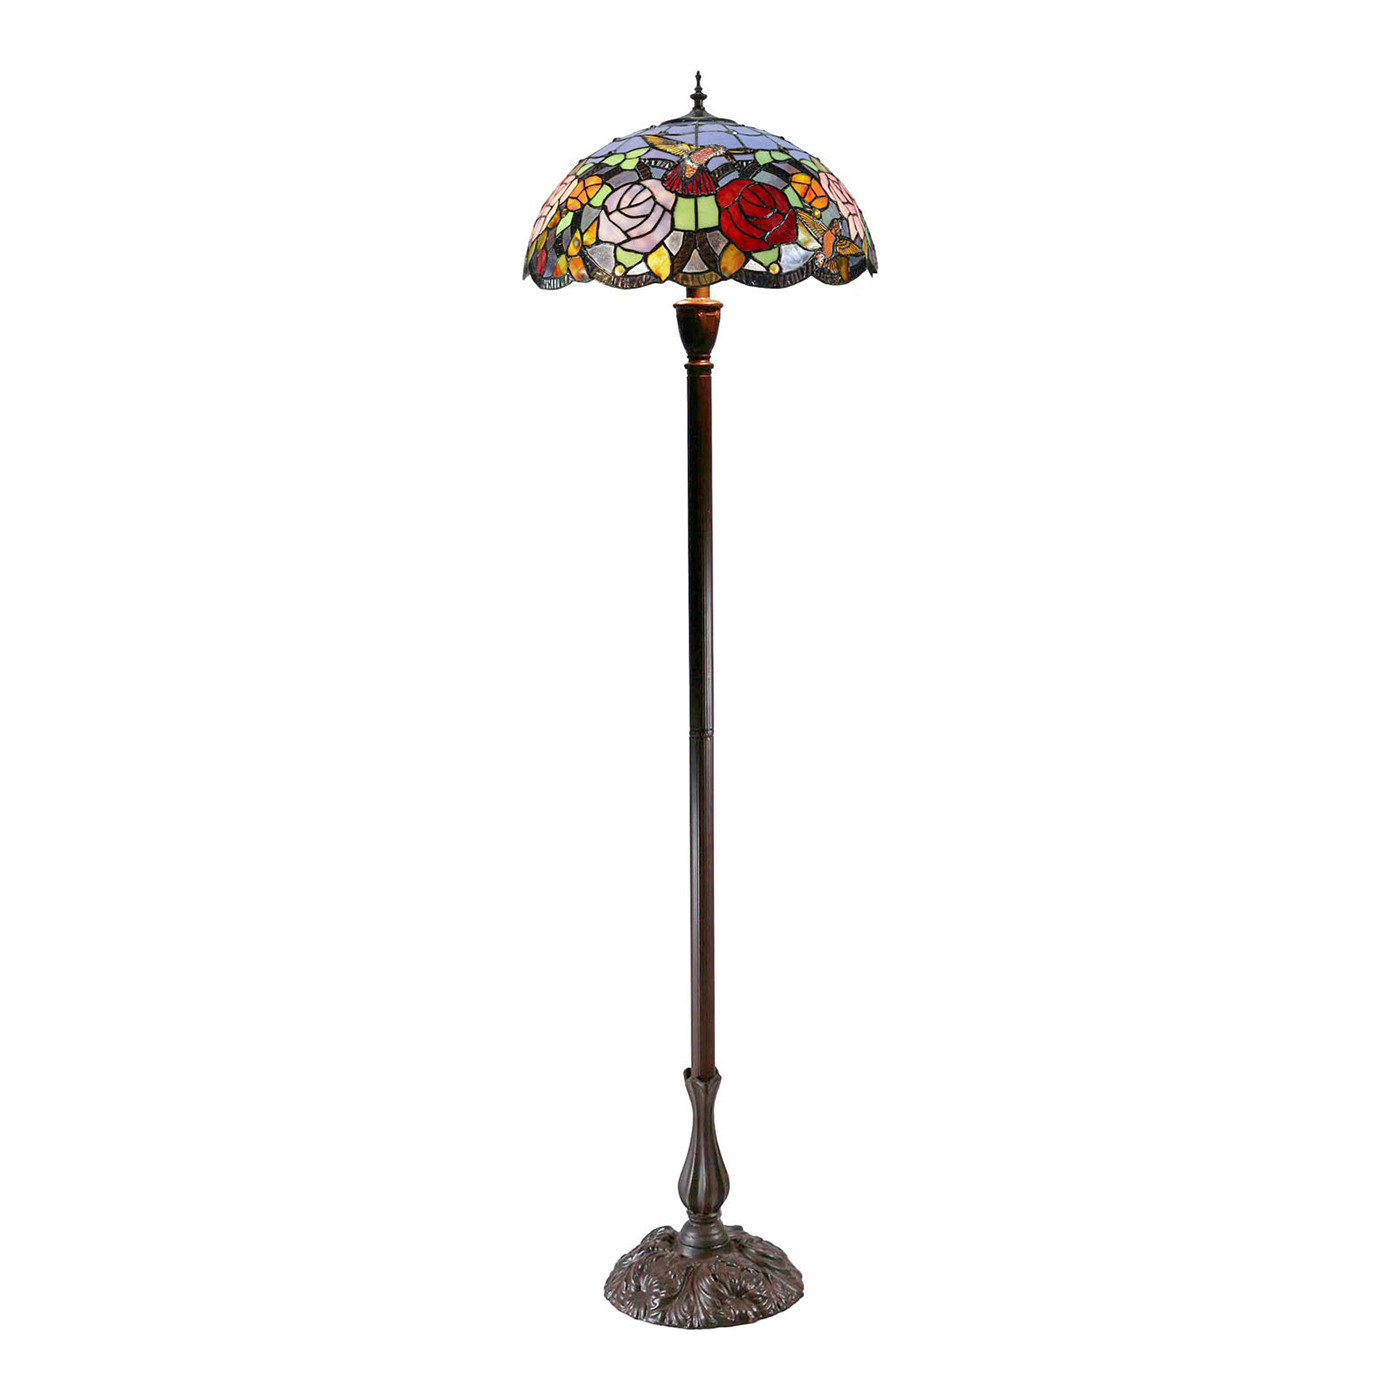 Hummingbird Flower Stained Glass Tiffany Floor Lamp